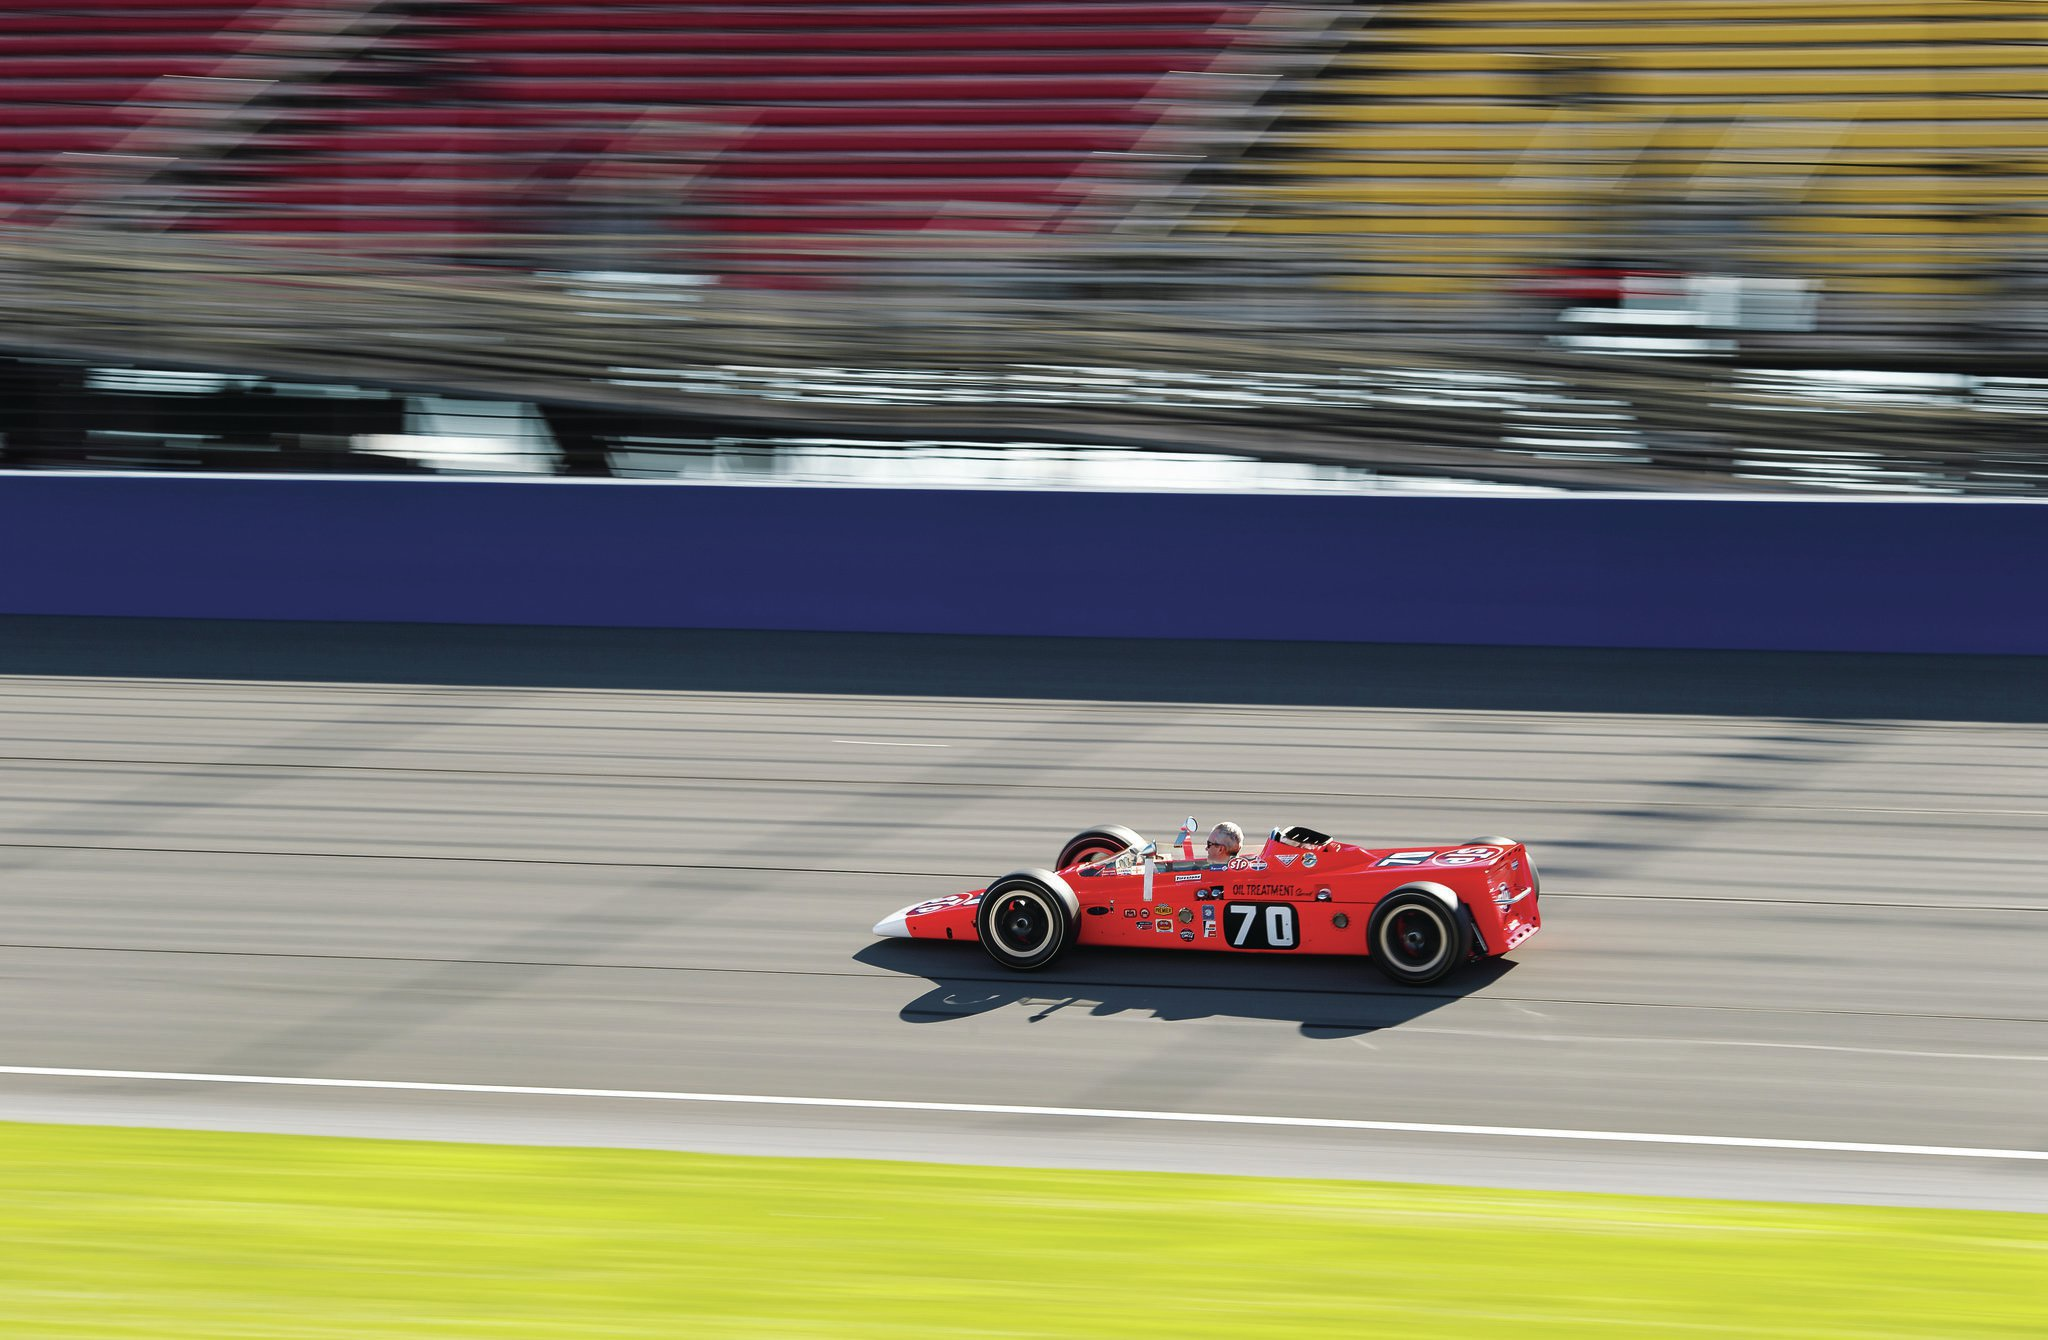 "When you see the Lotus 56-3 in person, its design is startling. Other IndyCars at the time still had a sort of hand-rolled cigarette profile, rounded in the middle and skinny on the ends. The rear placement of the turbine, and the fact that it needed no radiator or cooling setup meant that the nose of the Lotus car could be incredibly low. There's no wing—Granatelli was probably tired of hearing driver complaints that it ""scared them""—but the body shape was said to provide superior aerodynamics compared to its ovoid competitors."